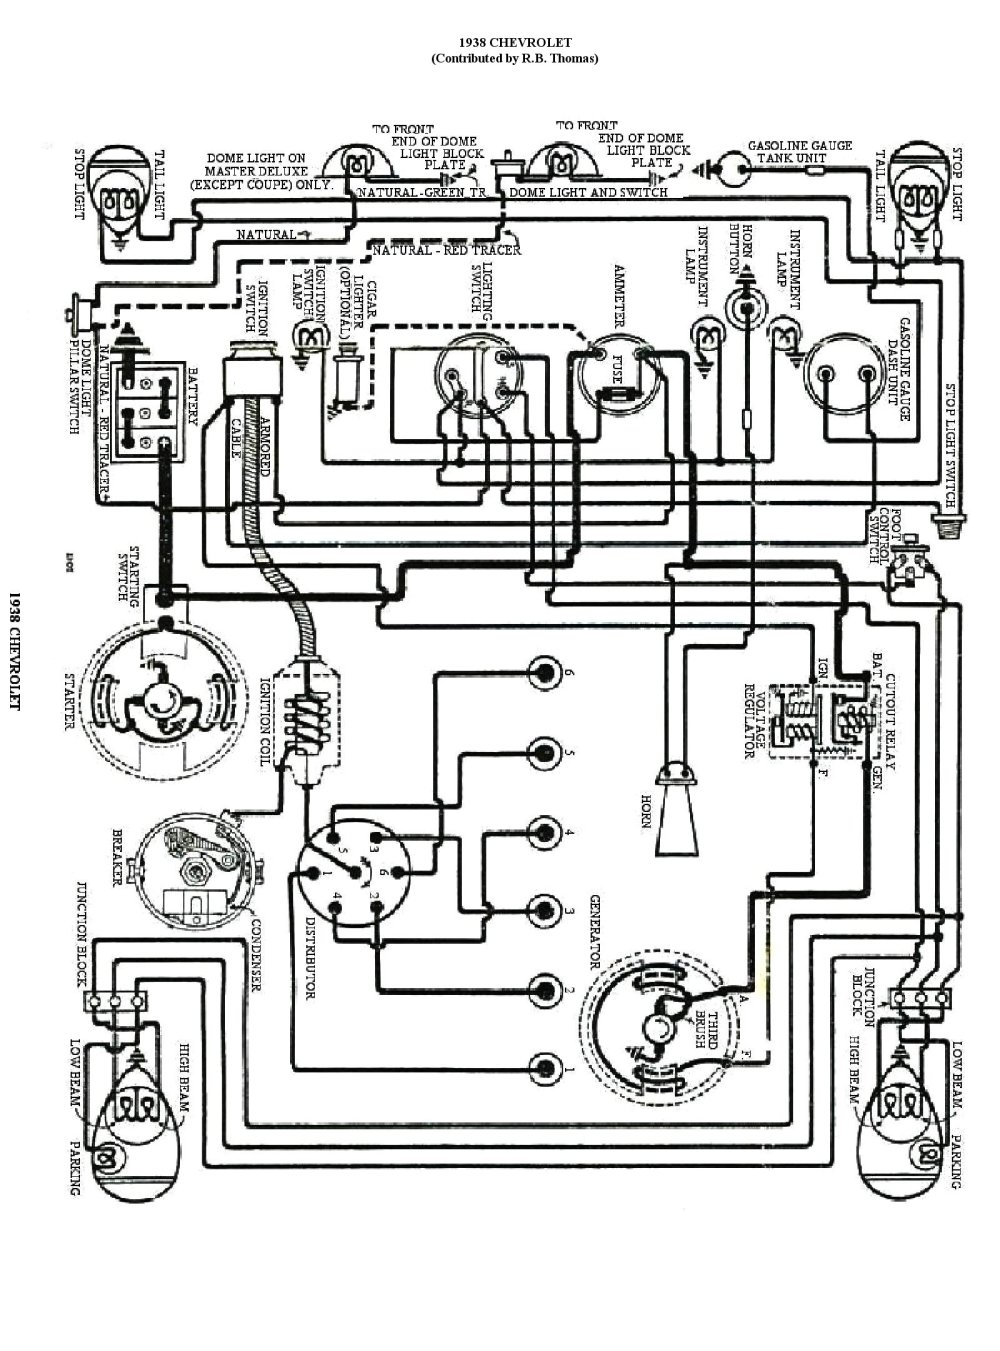 medium resolution of 1938 wiring chevy wiring diagrams